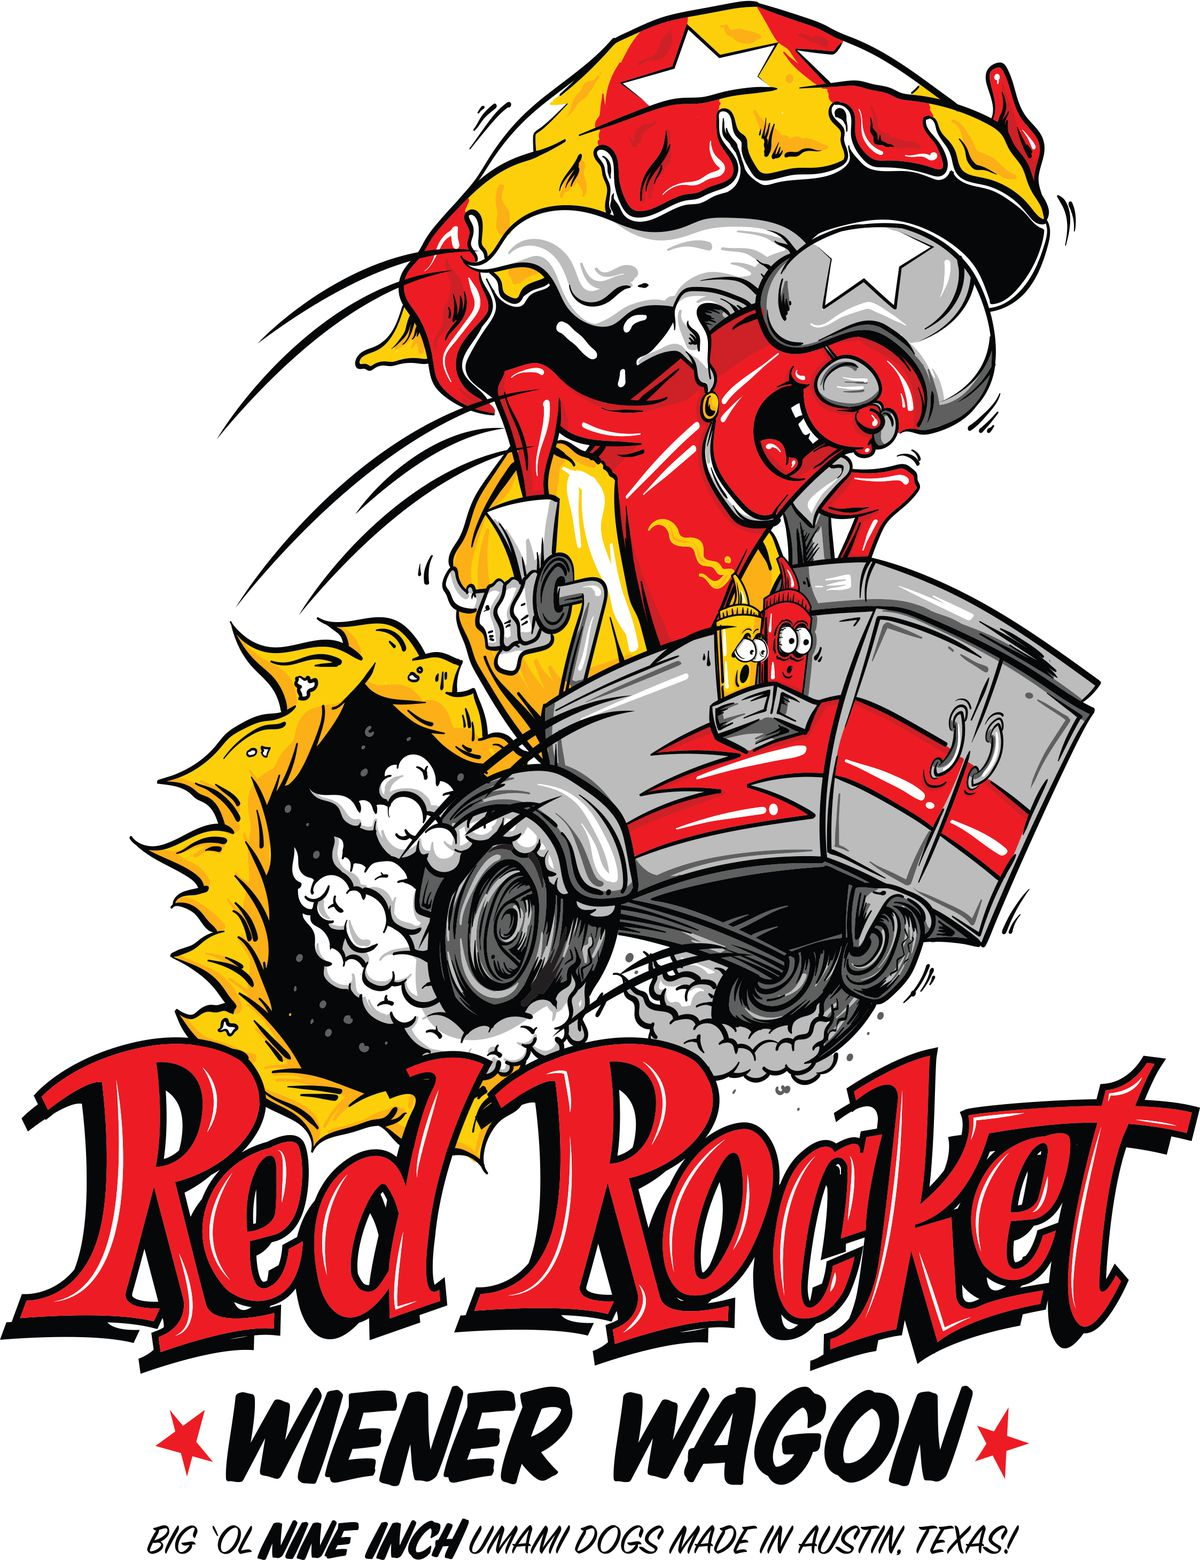 The logo for Red Rocket Wiener Wagon